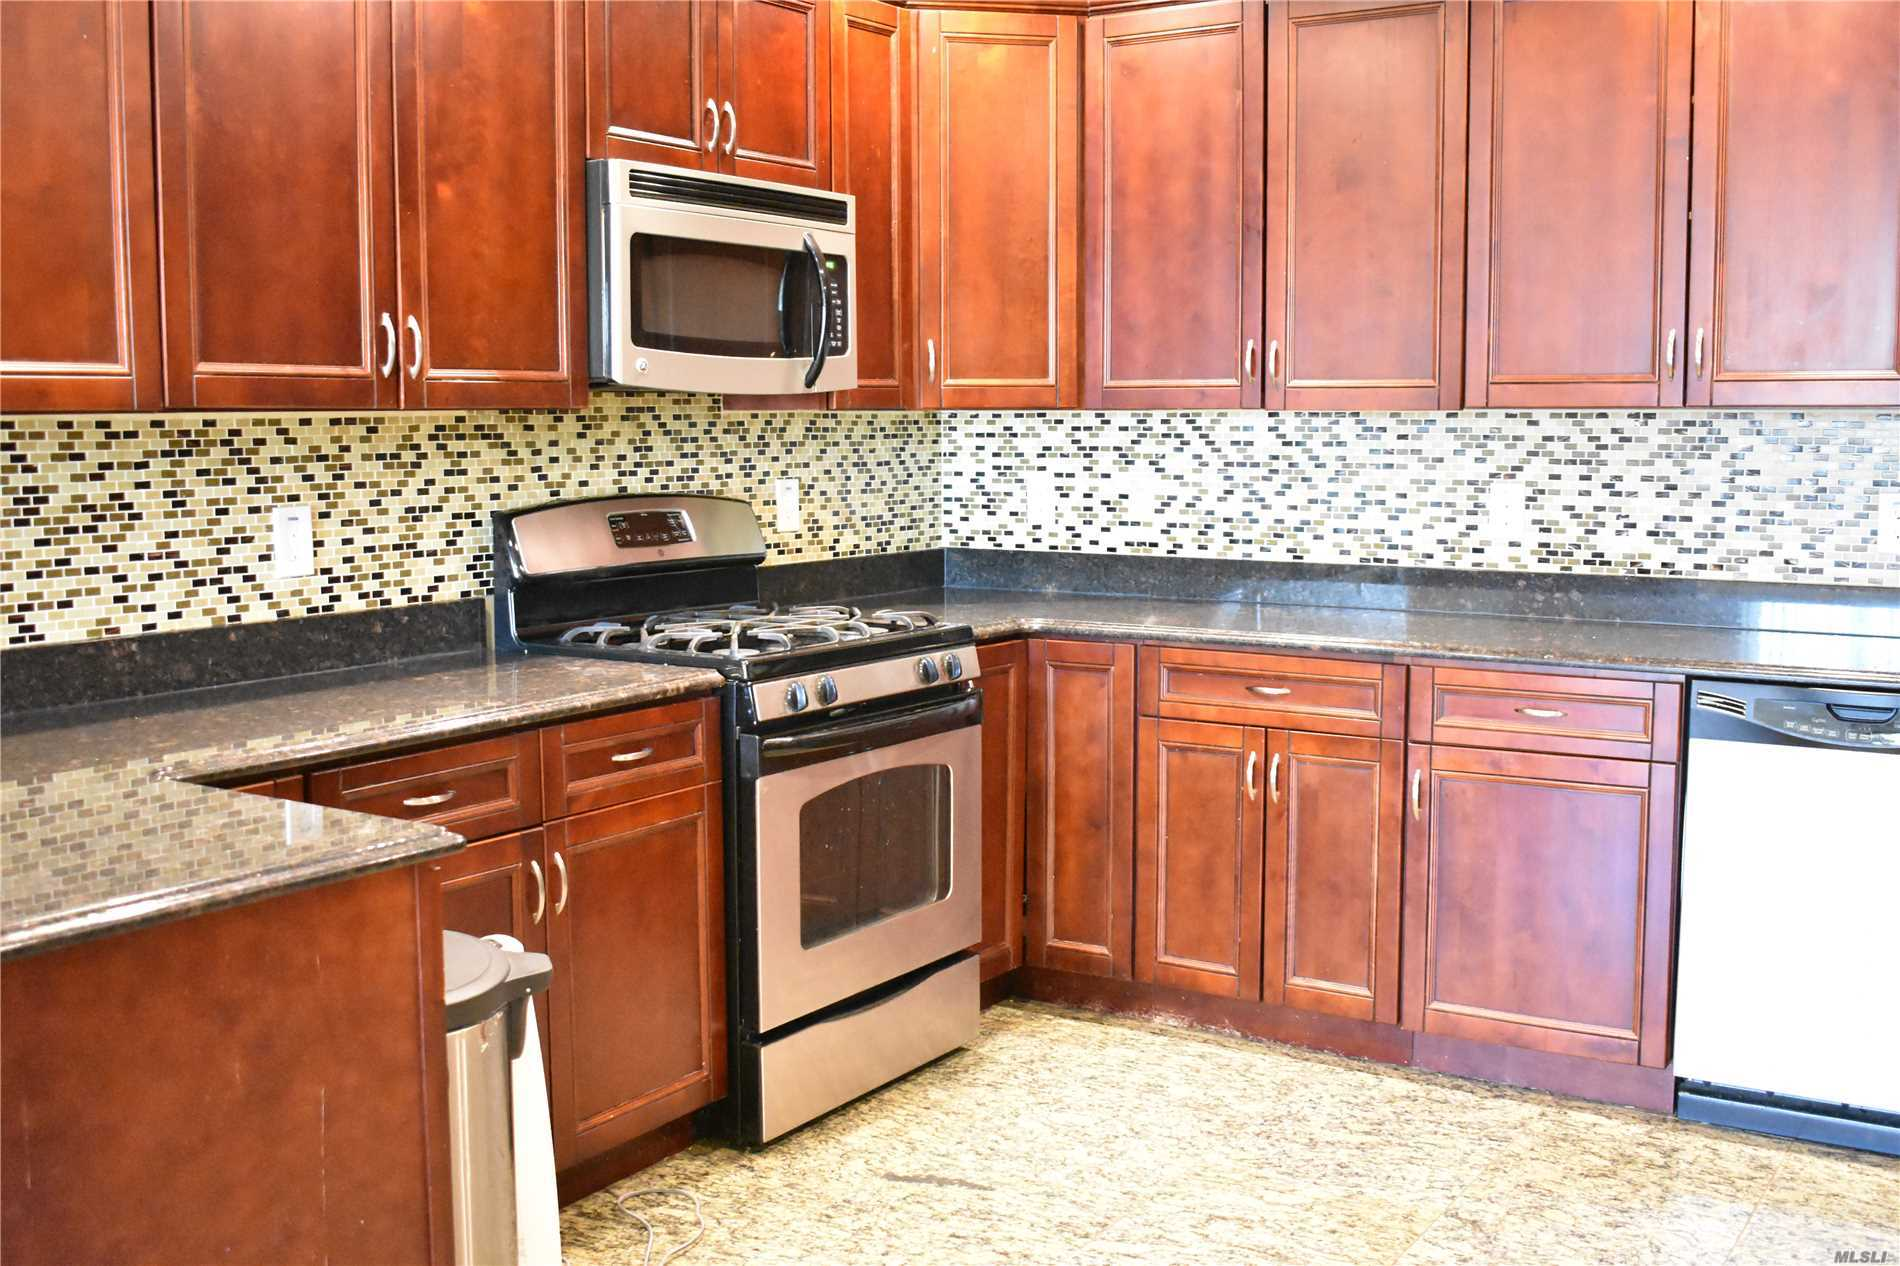 Manhattan Style Living In Long Island 0.2 Miles To Lirr, Luxury Apartment In Building Featuring Gourmet Kitchen Huge Living Room Formal Dining Master Suite W/ Full Bath & 2 Walk-In Closets Additional Large Br 2nd Bath Washer/ Dryer Included, Gas Cooking And Heat, Central A/C.Intercom, Available From 1st Feb